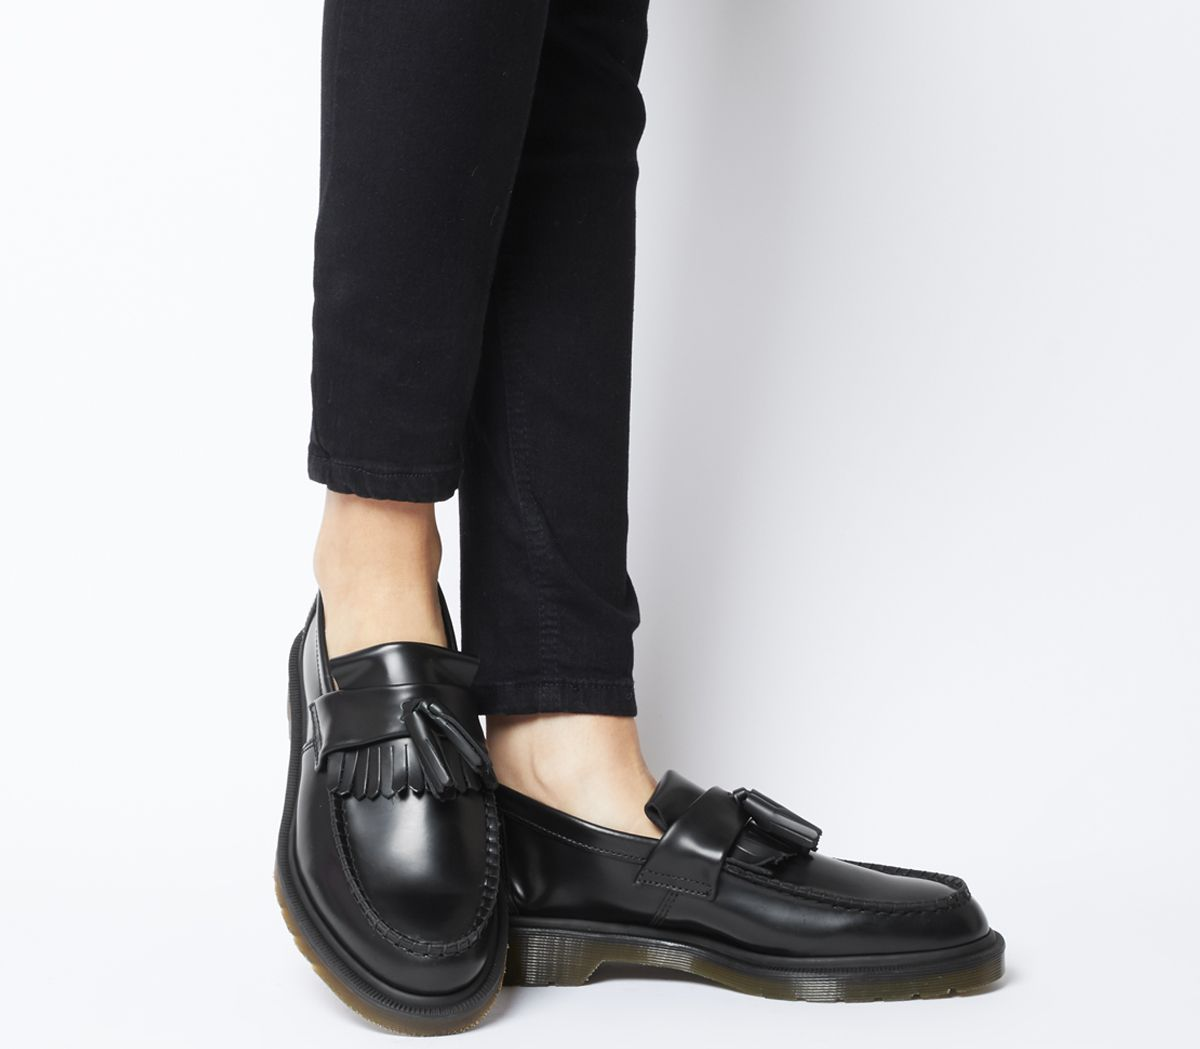 103867d5cba Dr. Martens Adrian Loafers Black Smooth - Flats